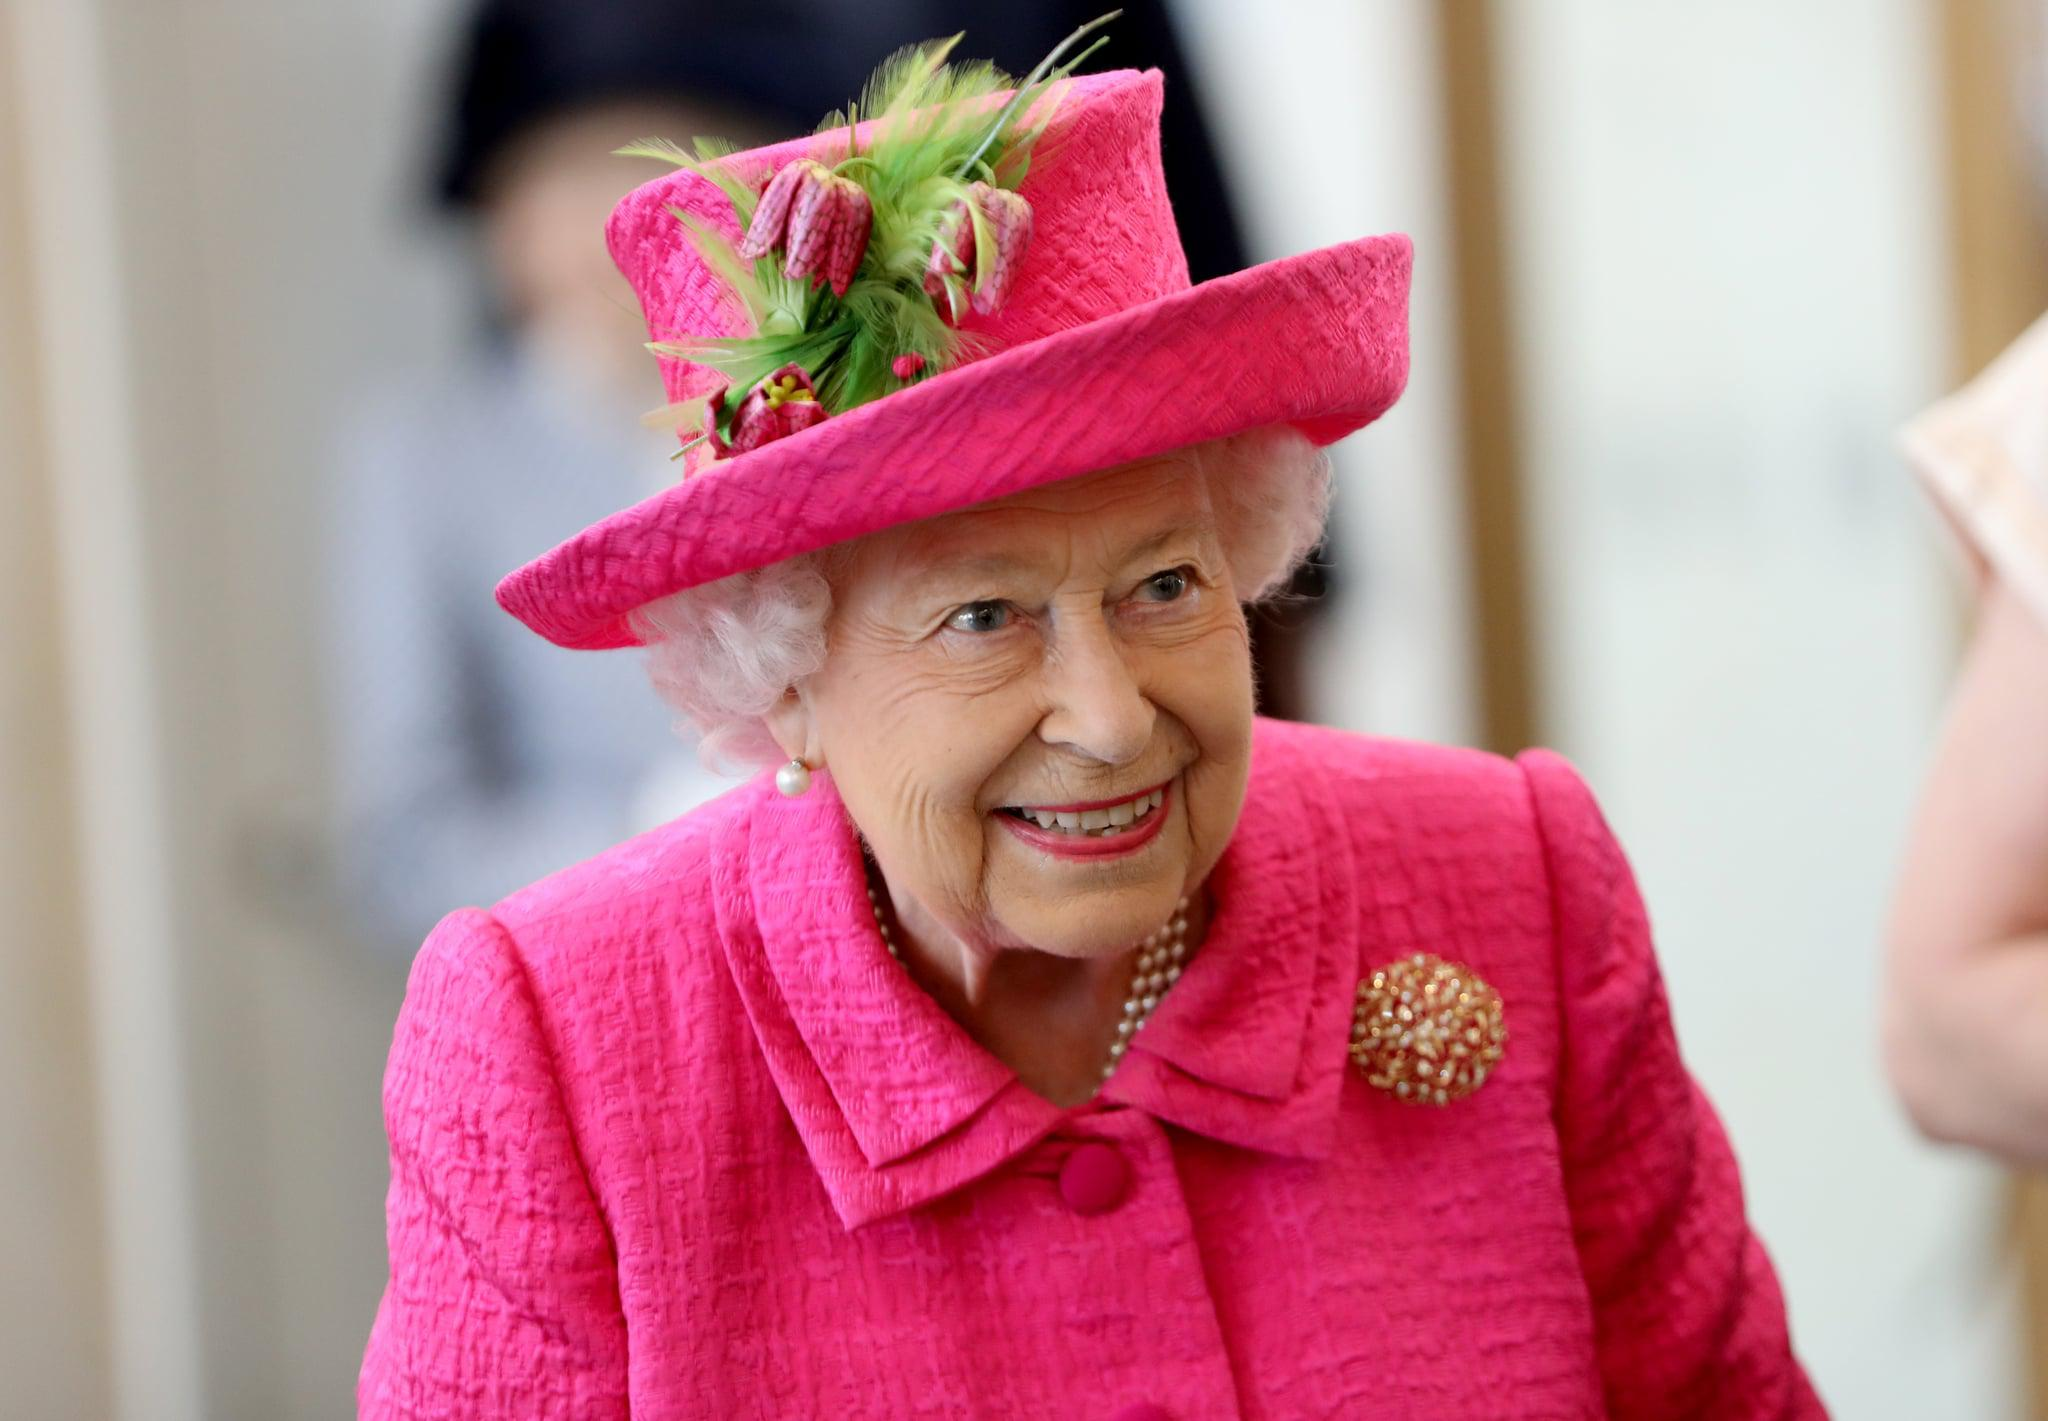 CAMBRIDGE, ENGLAND - JULY 09:  Queen Elizabeth II during a visit to the NIAB, (National Institute of Agricultural Botany) on July 09, 2019 in Cambridge, England. (Photo by Chris Jackson/Getty Images)